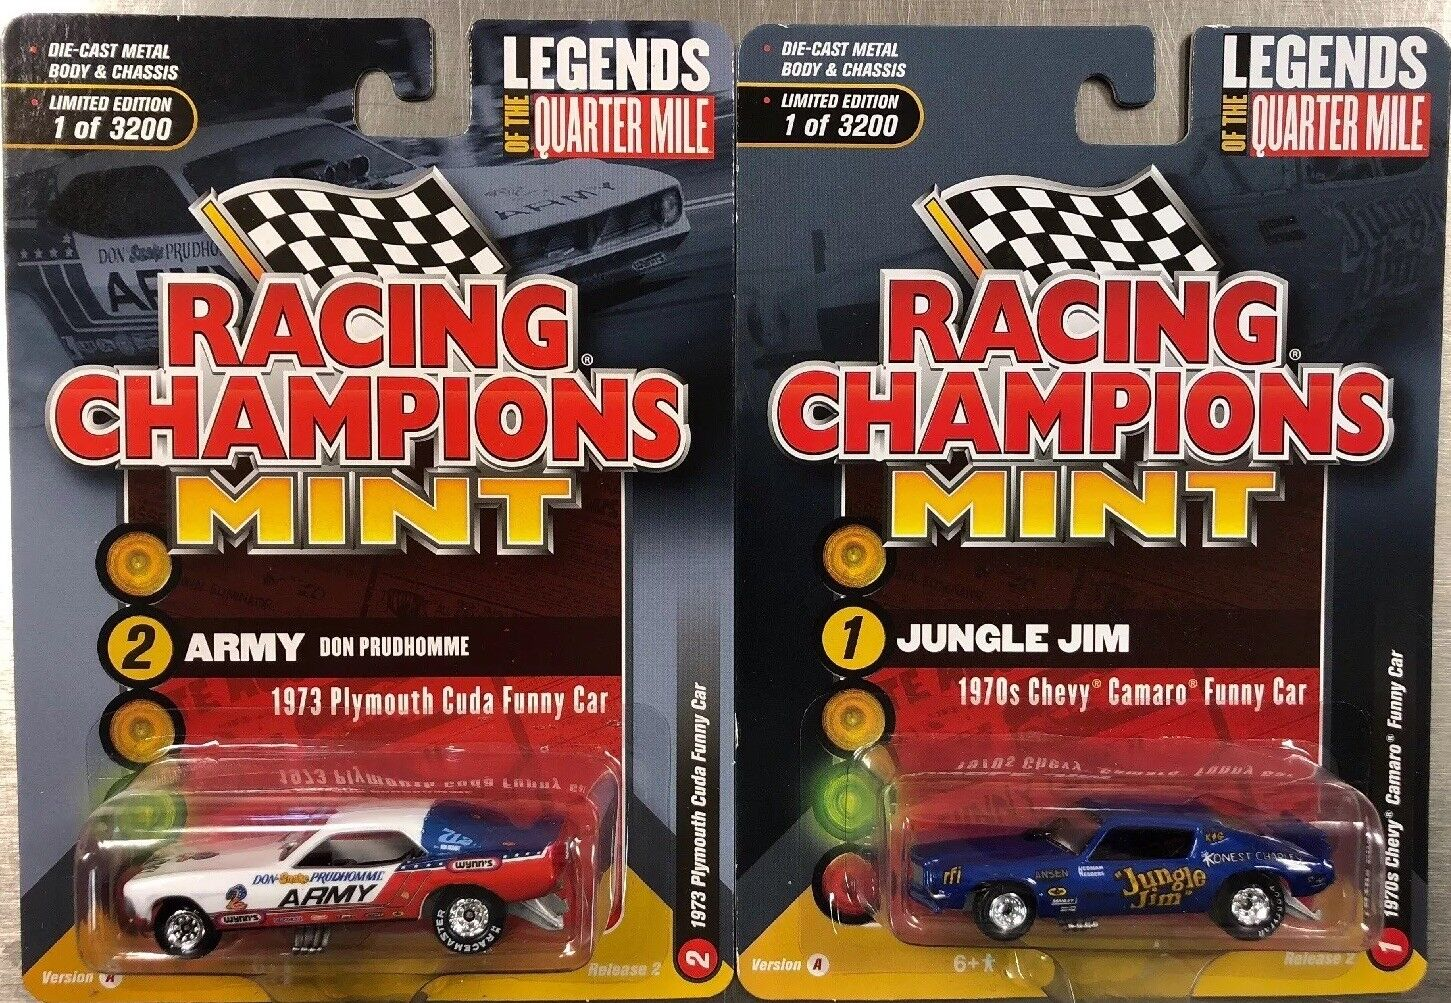 RACING CHAMPIONS MINT 1970s CHEVY CAMARO FUNNY CAR & 1973 PLYMOUTH CUDA LOT OF 2